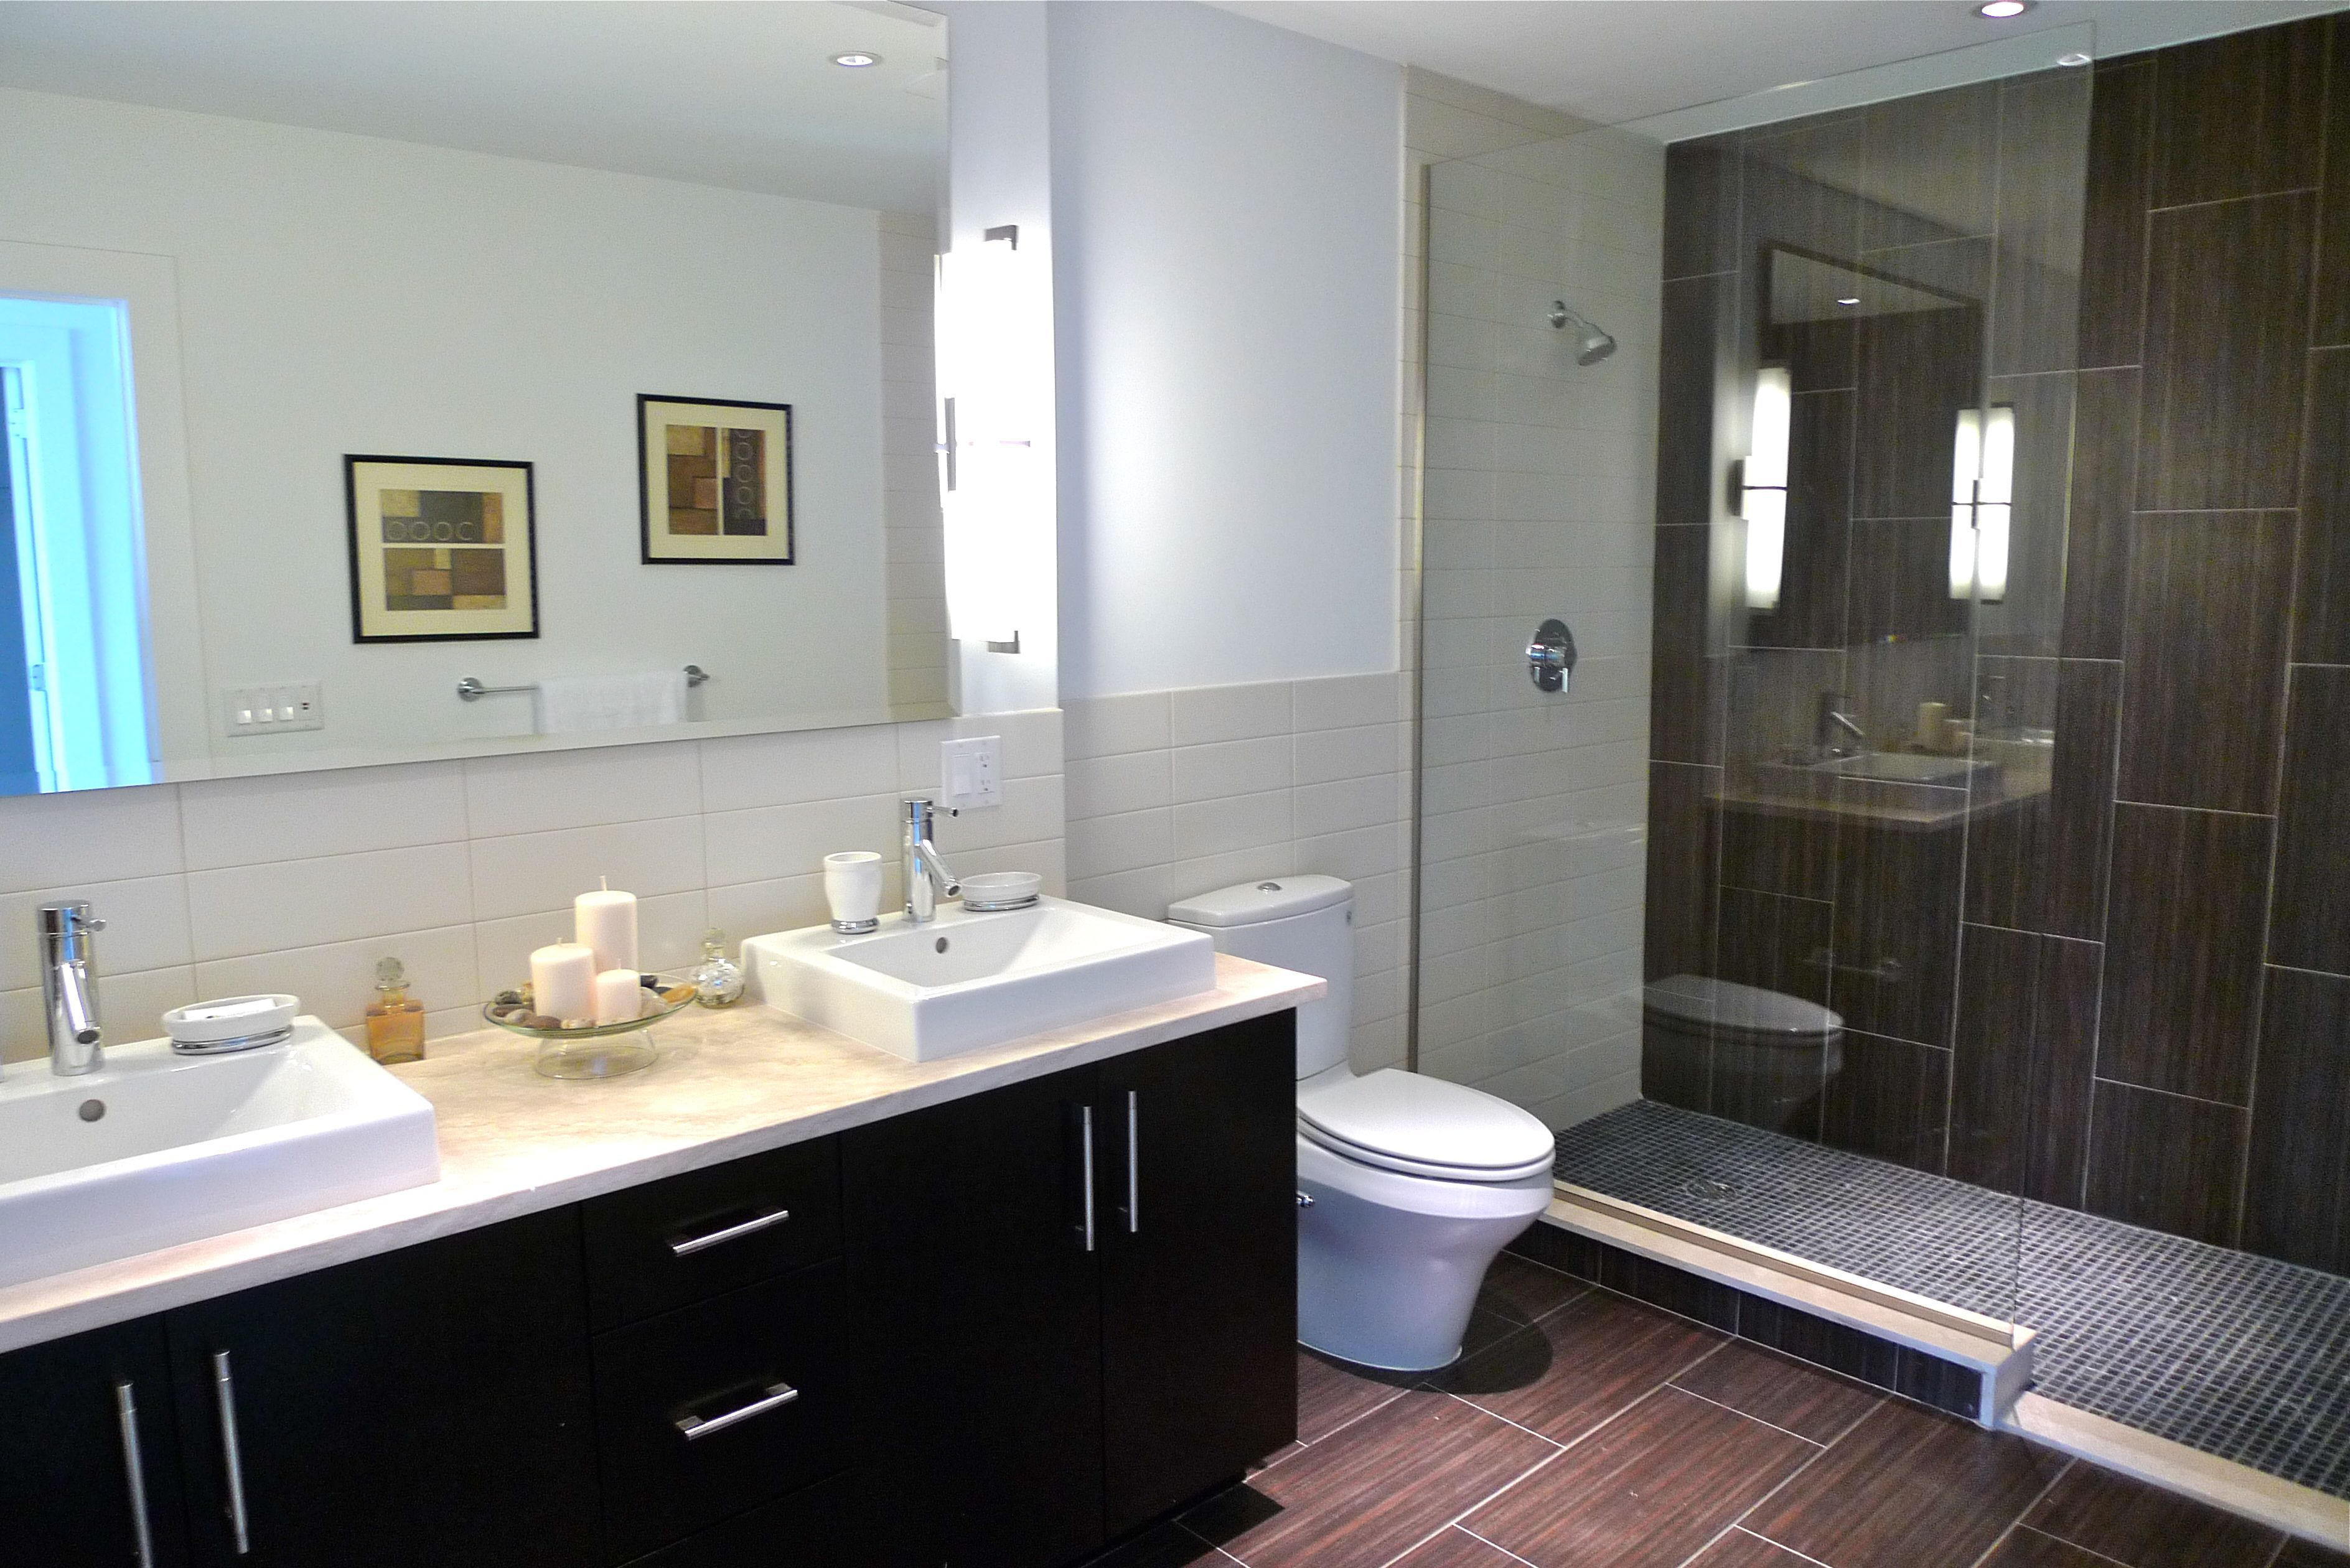 Famous Bathroom Design Tools Online Free Thick Wash Basin Designs For Small Bathrooms In India Regular Gay Bath House Fort Worth Brushed Copper Bathroom Light Fixtures Youthful Best Ceramic Tile For Bathroom Floors BlueBathroom Cabinets Ikea Uk 1000  Images About 2 Sink Bathroom Remodel On Pinterest ..